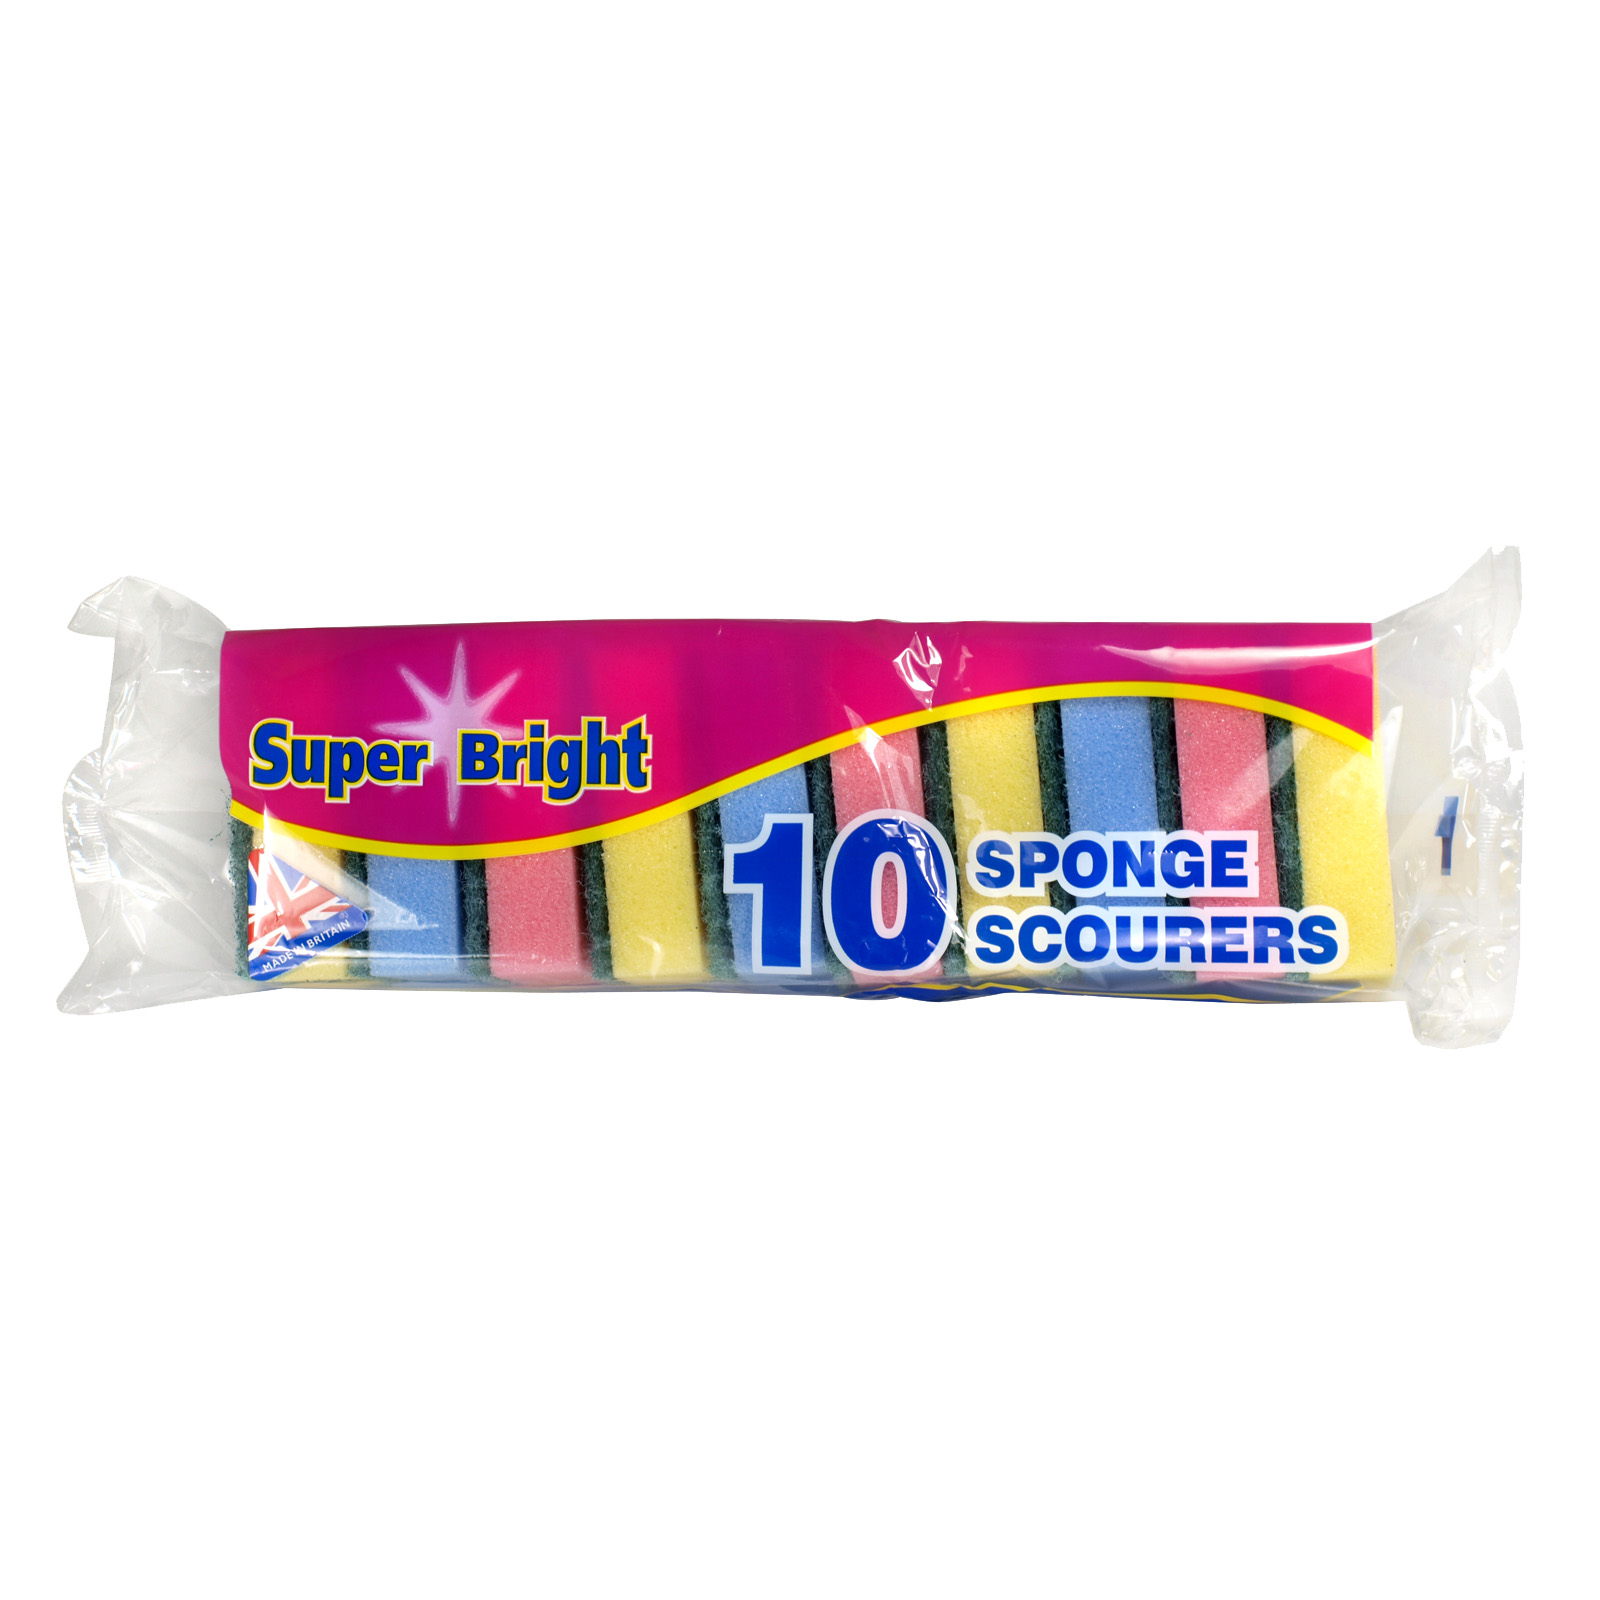 SUPERBRIGHT 10 SPONGE SCOURERS X10